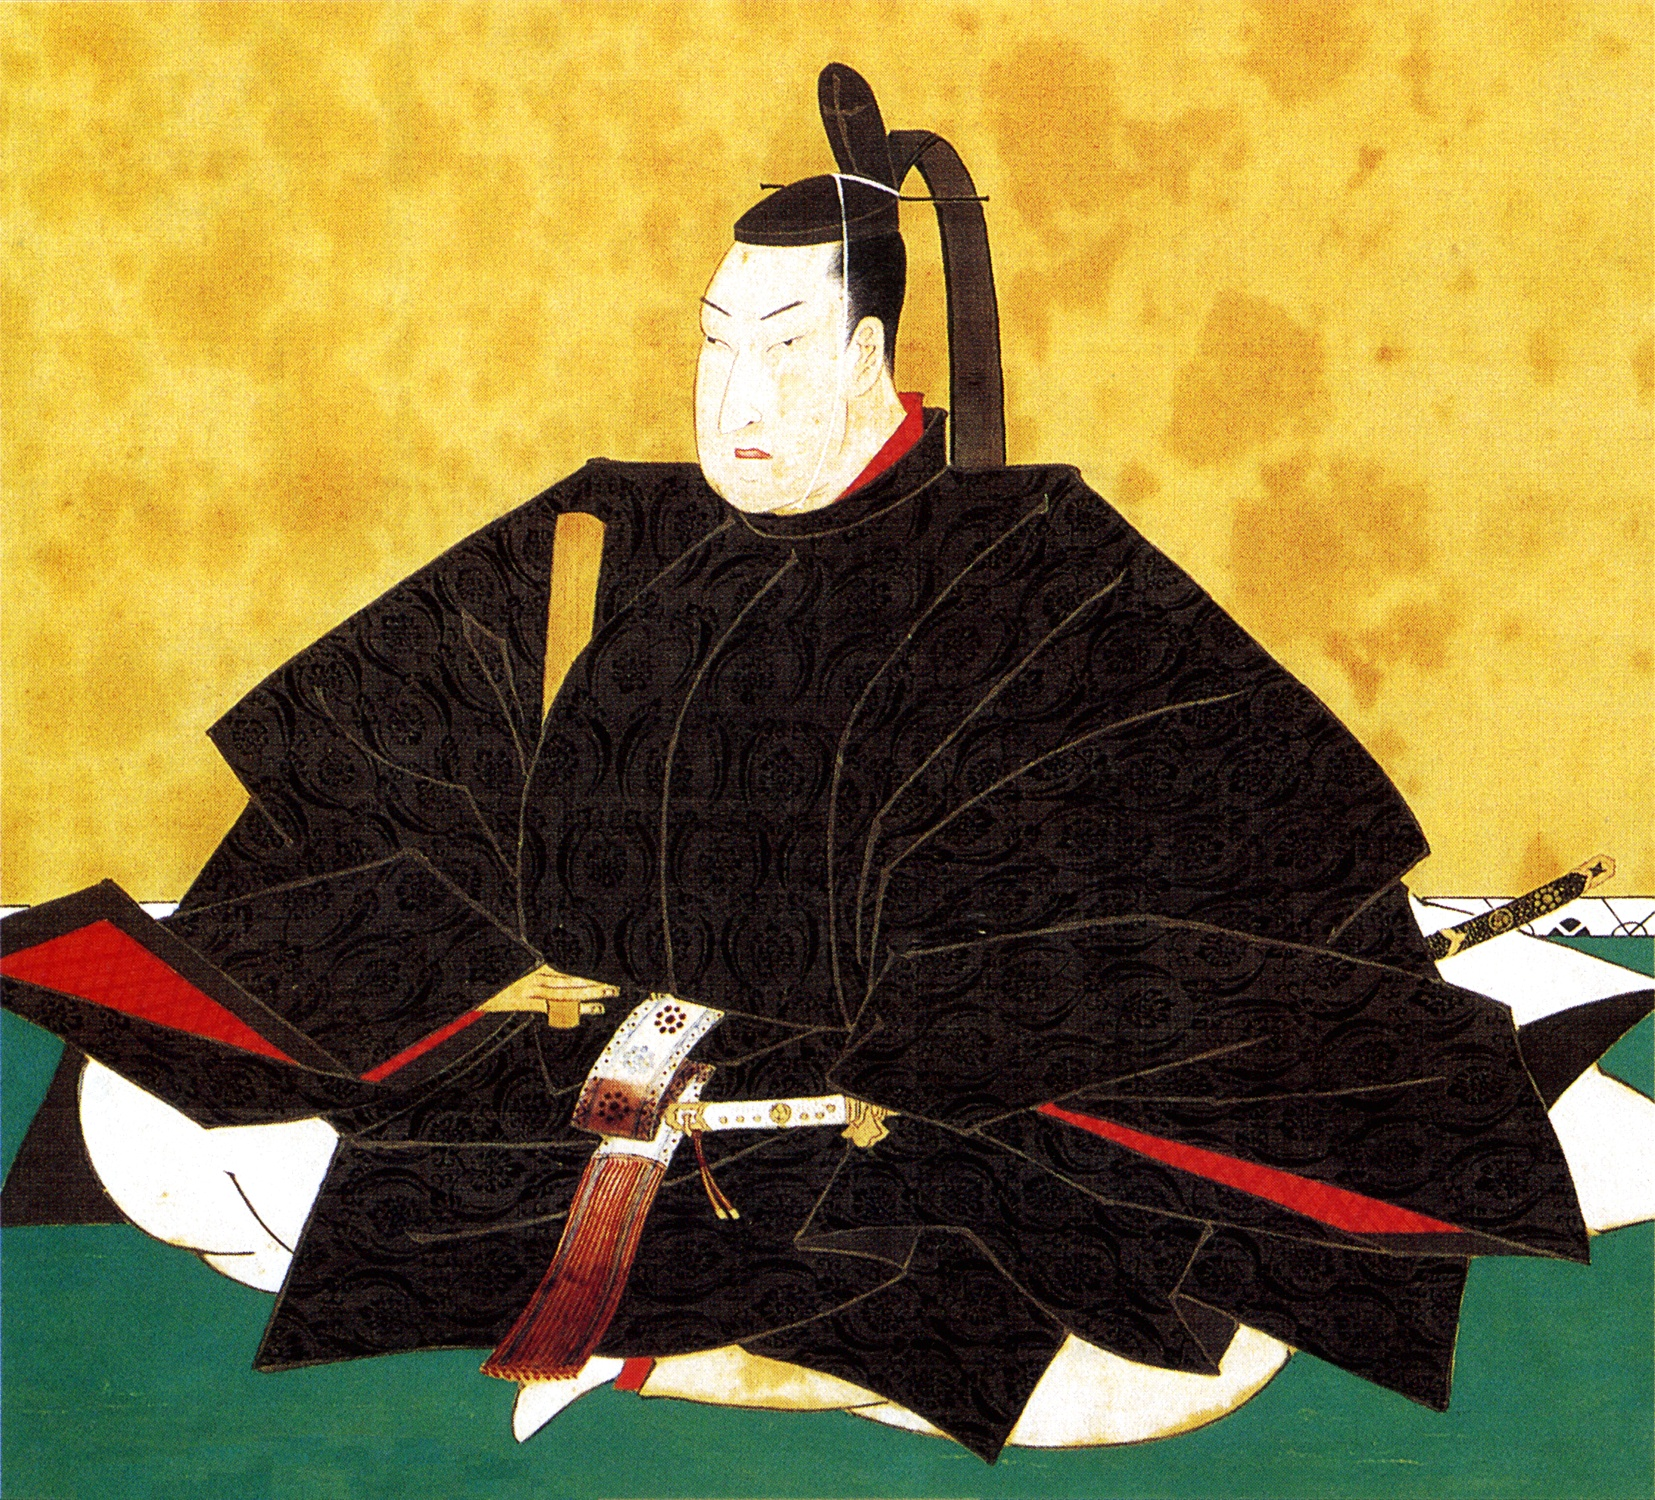 honorable women in tokugawa society The ming dynasty and the tokugawa shogunate the king and shogun both had complete control over their society samurai women were expected to be strong.